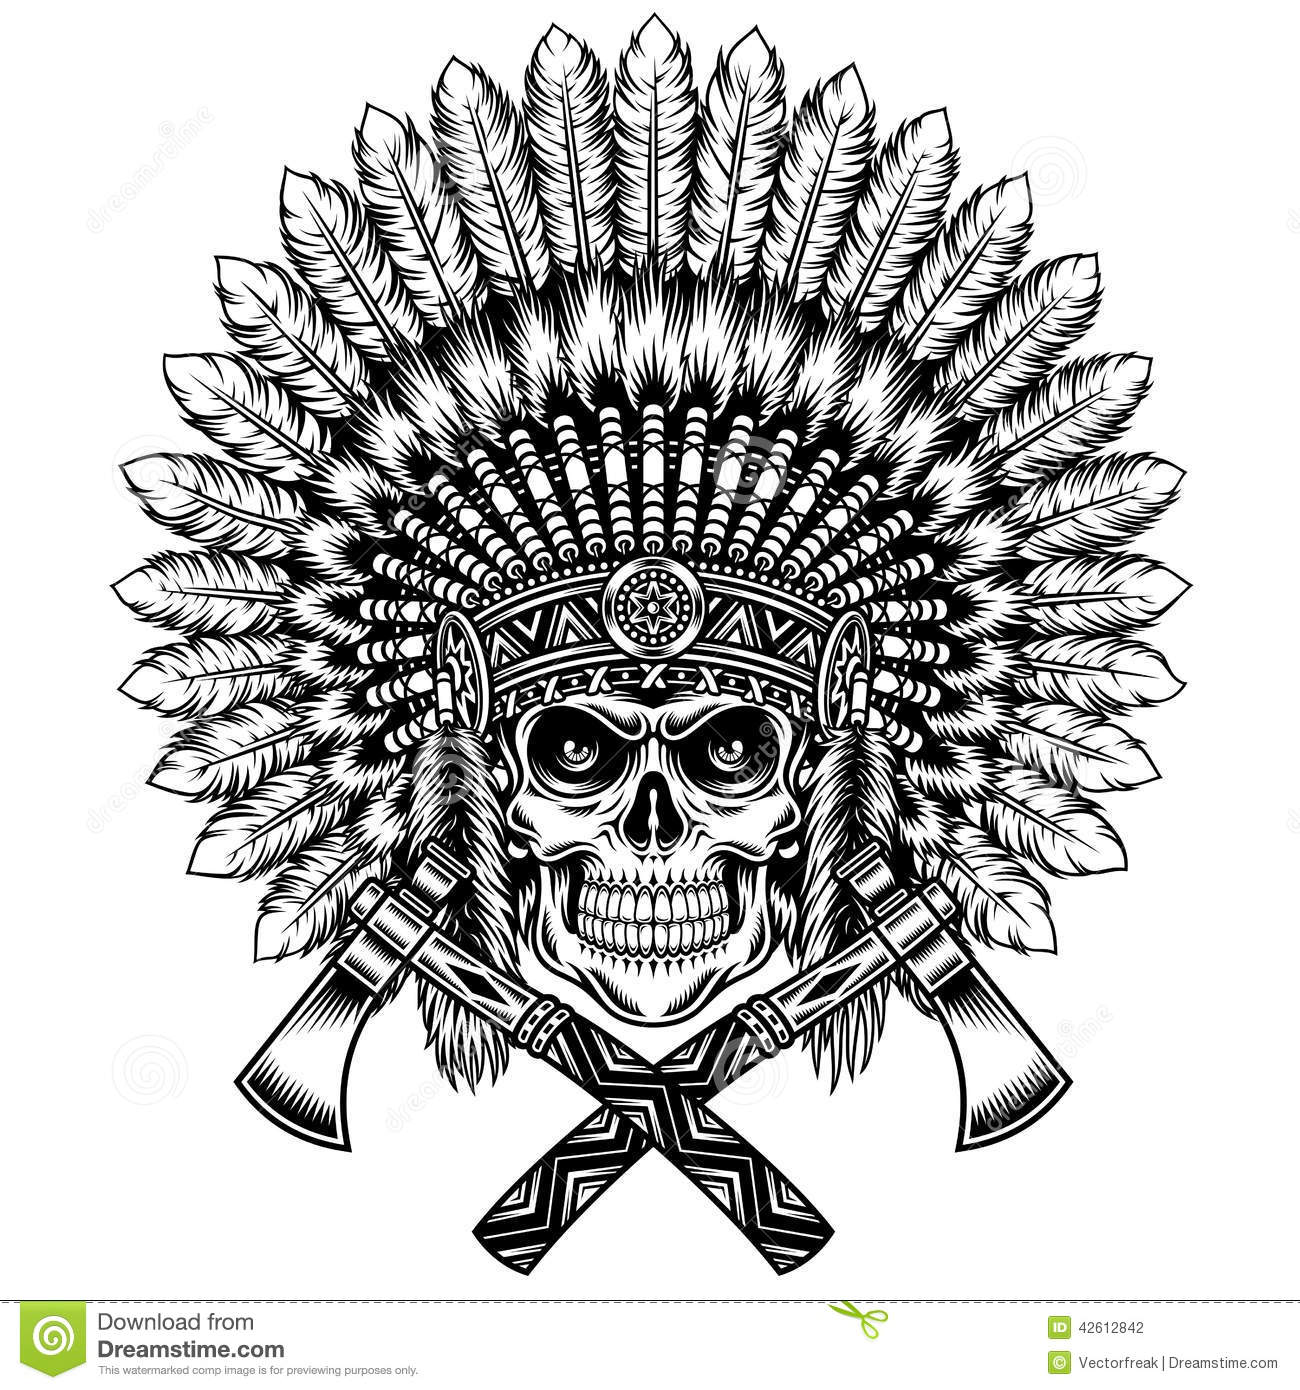 LED Information in addition Bike chopper engine harley locations moto motorbike icon likewise Stock Illustration American Indian Chief Skull Tomahawk Fully Editable Vector Illustration Image Suitable Emblem Insignia Crest T Shirt Image42612842 furthermore Hand Drawn Vintage Logos Pack also Motorcycle Model Type Objects Icons Moto 446050327. on harley motorcycle styles